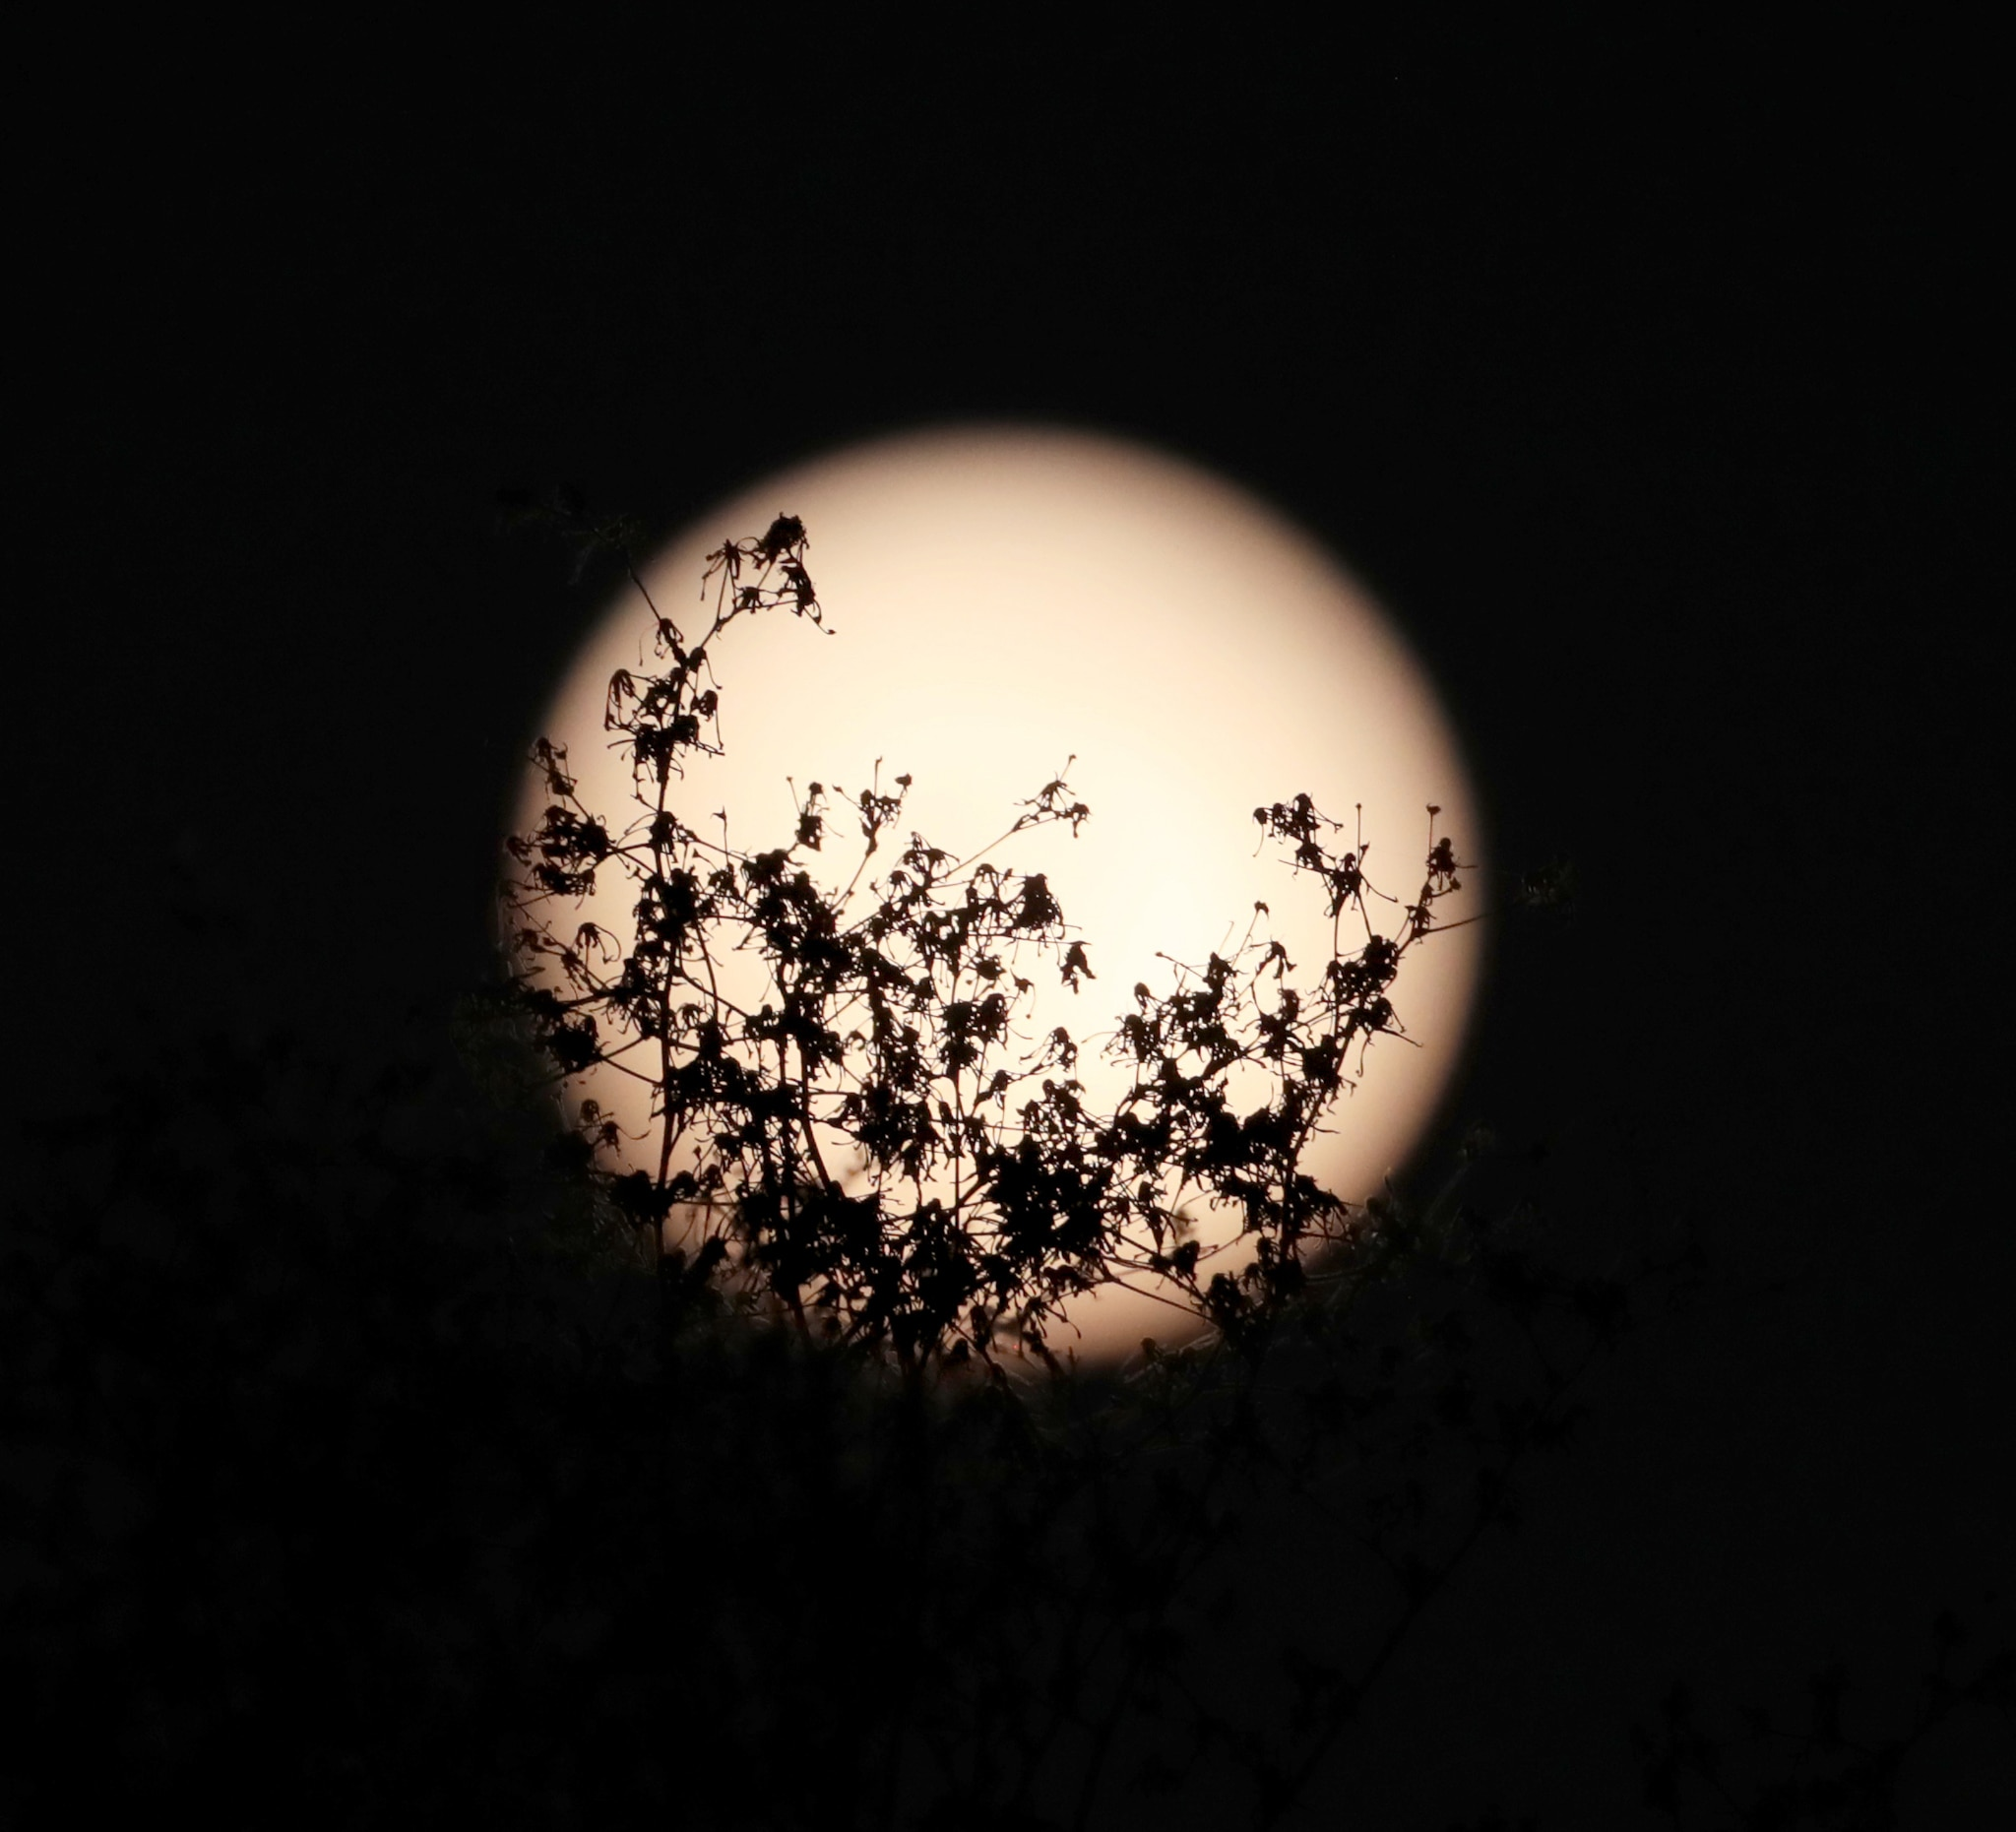 Bushes silhouetted by light from moon (© Xinhua/Li Ying via Getty Images)